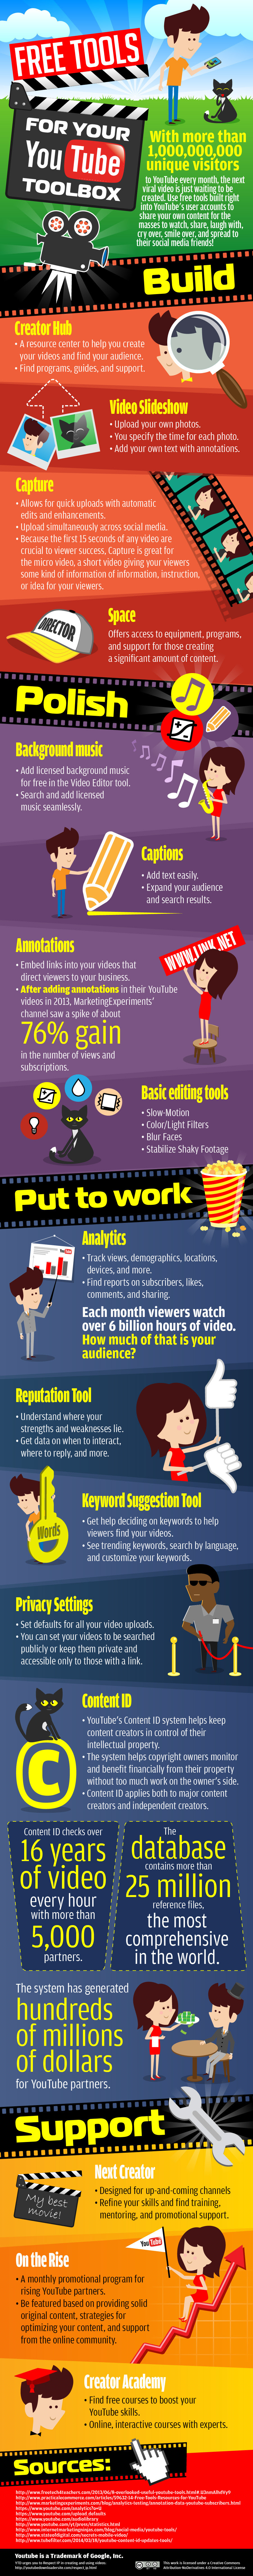 Free Tools For Your YouTube Toolbox - #infographic #onlinemarketing